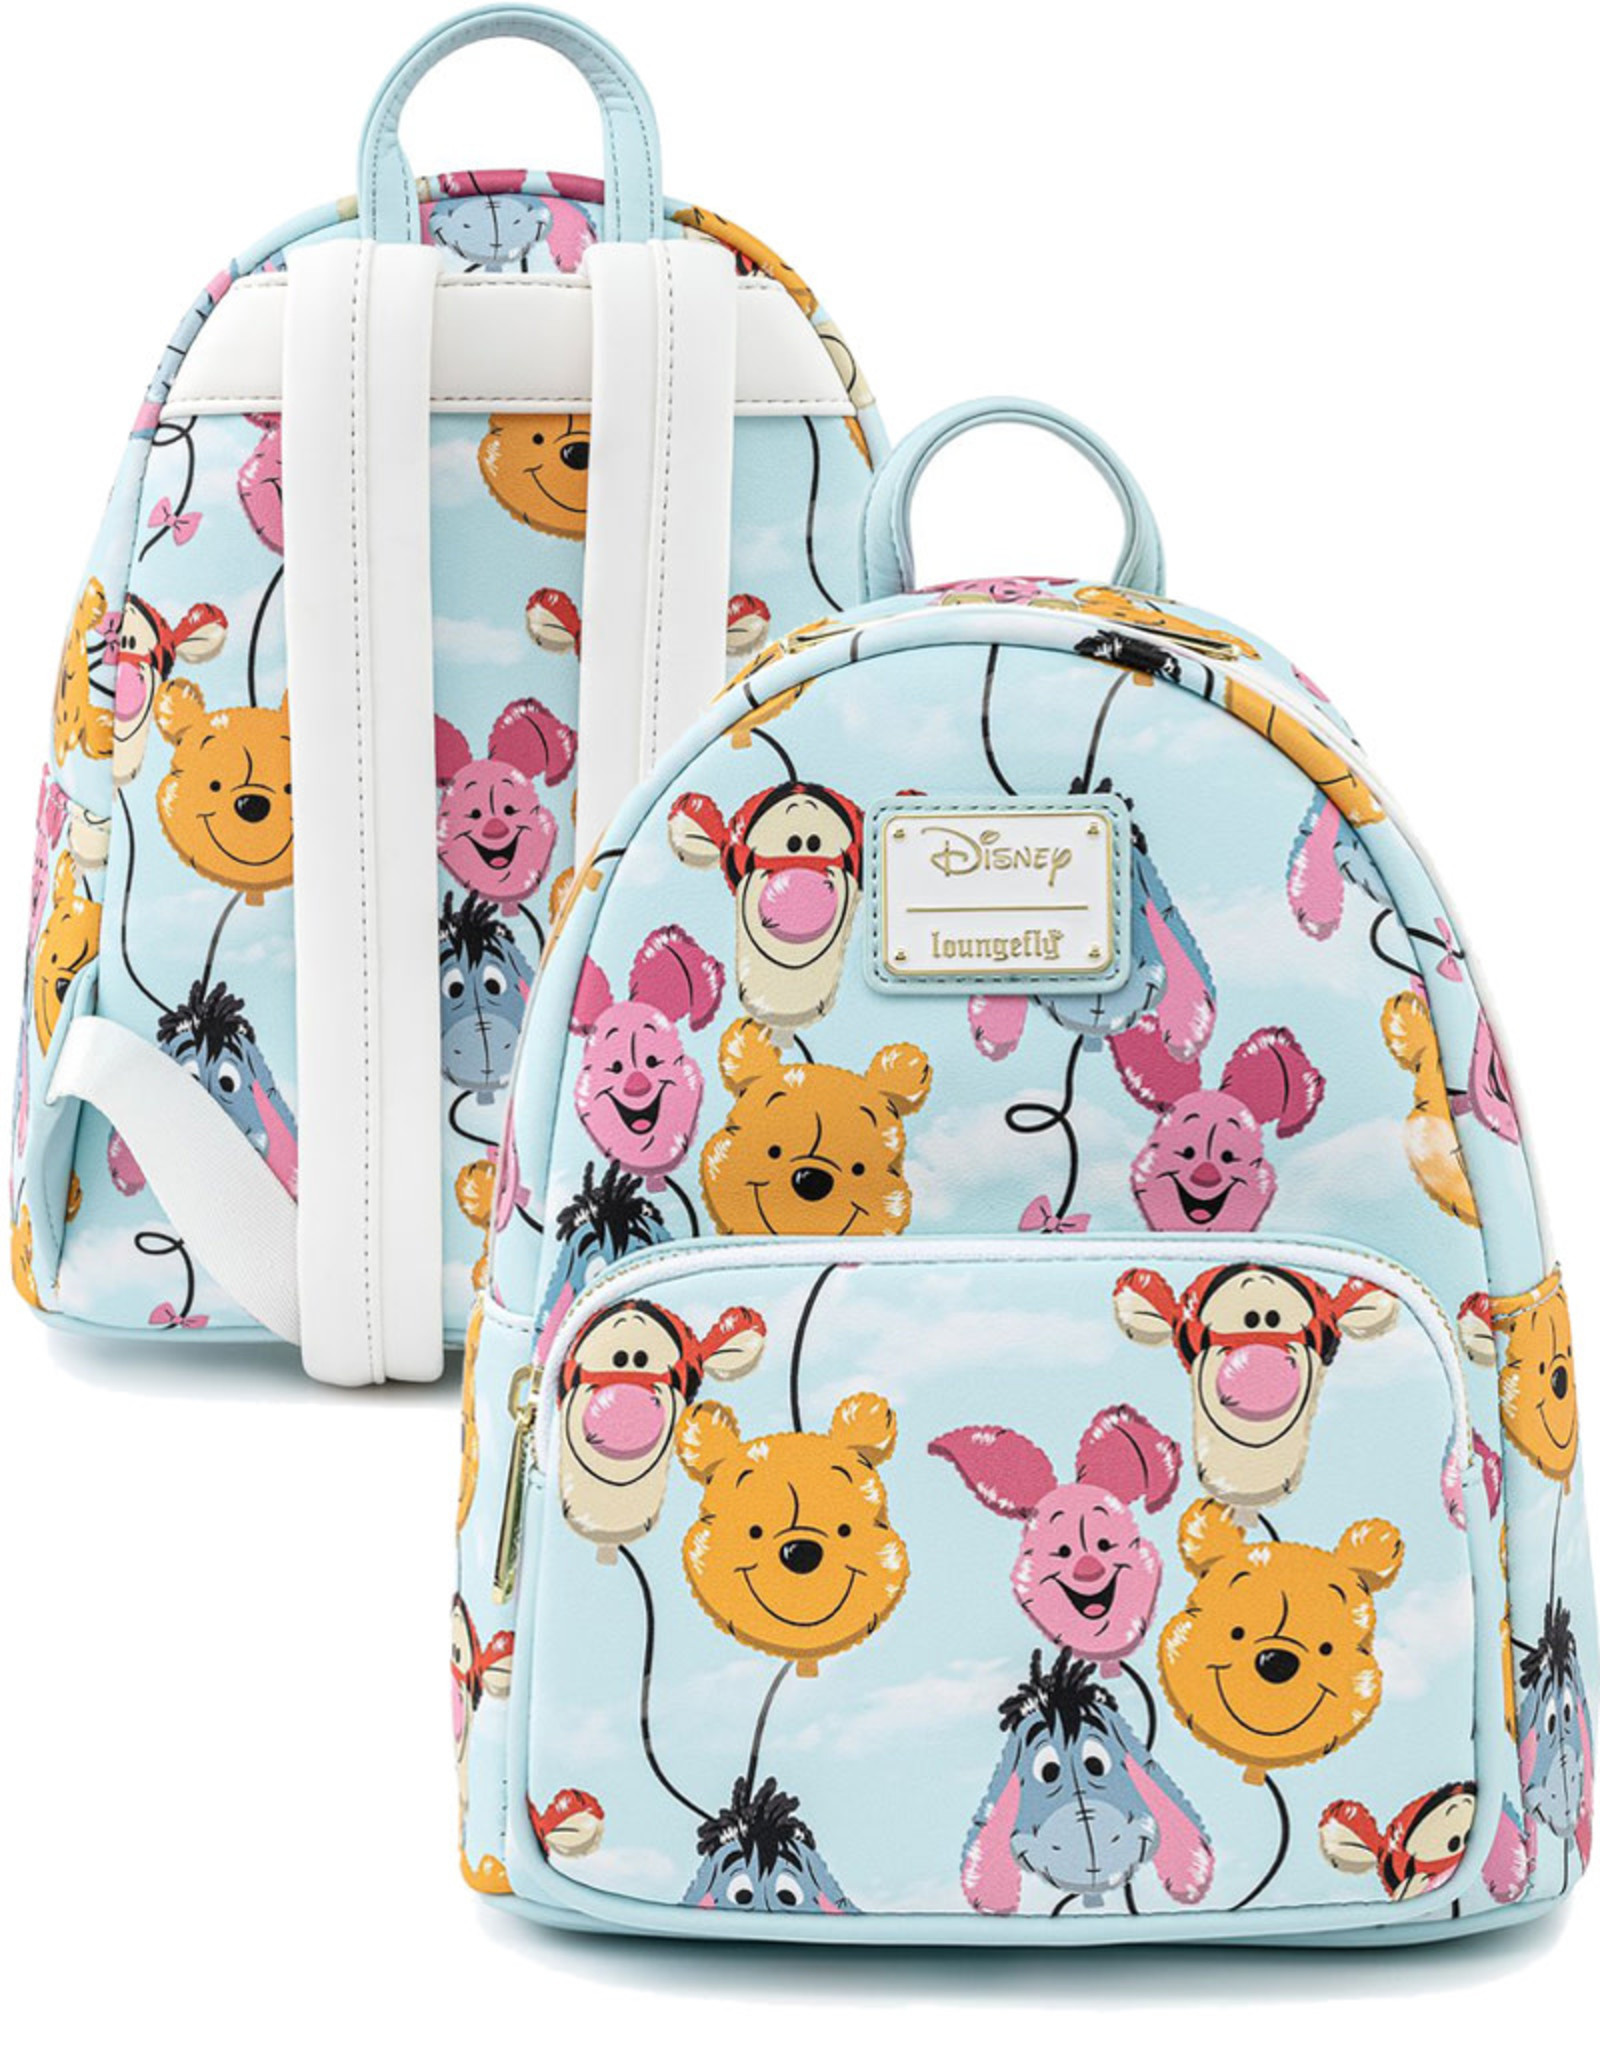 Disney ( Loungefly Mini Backpack )  Winnie the Pooh Balloons